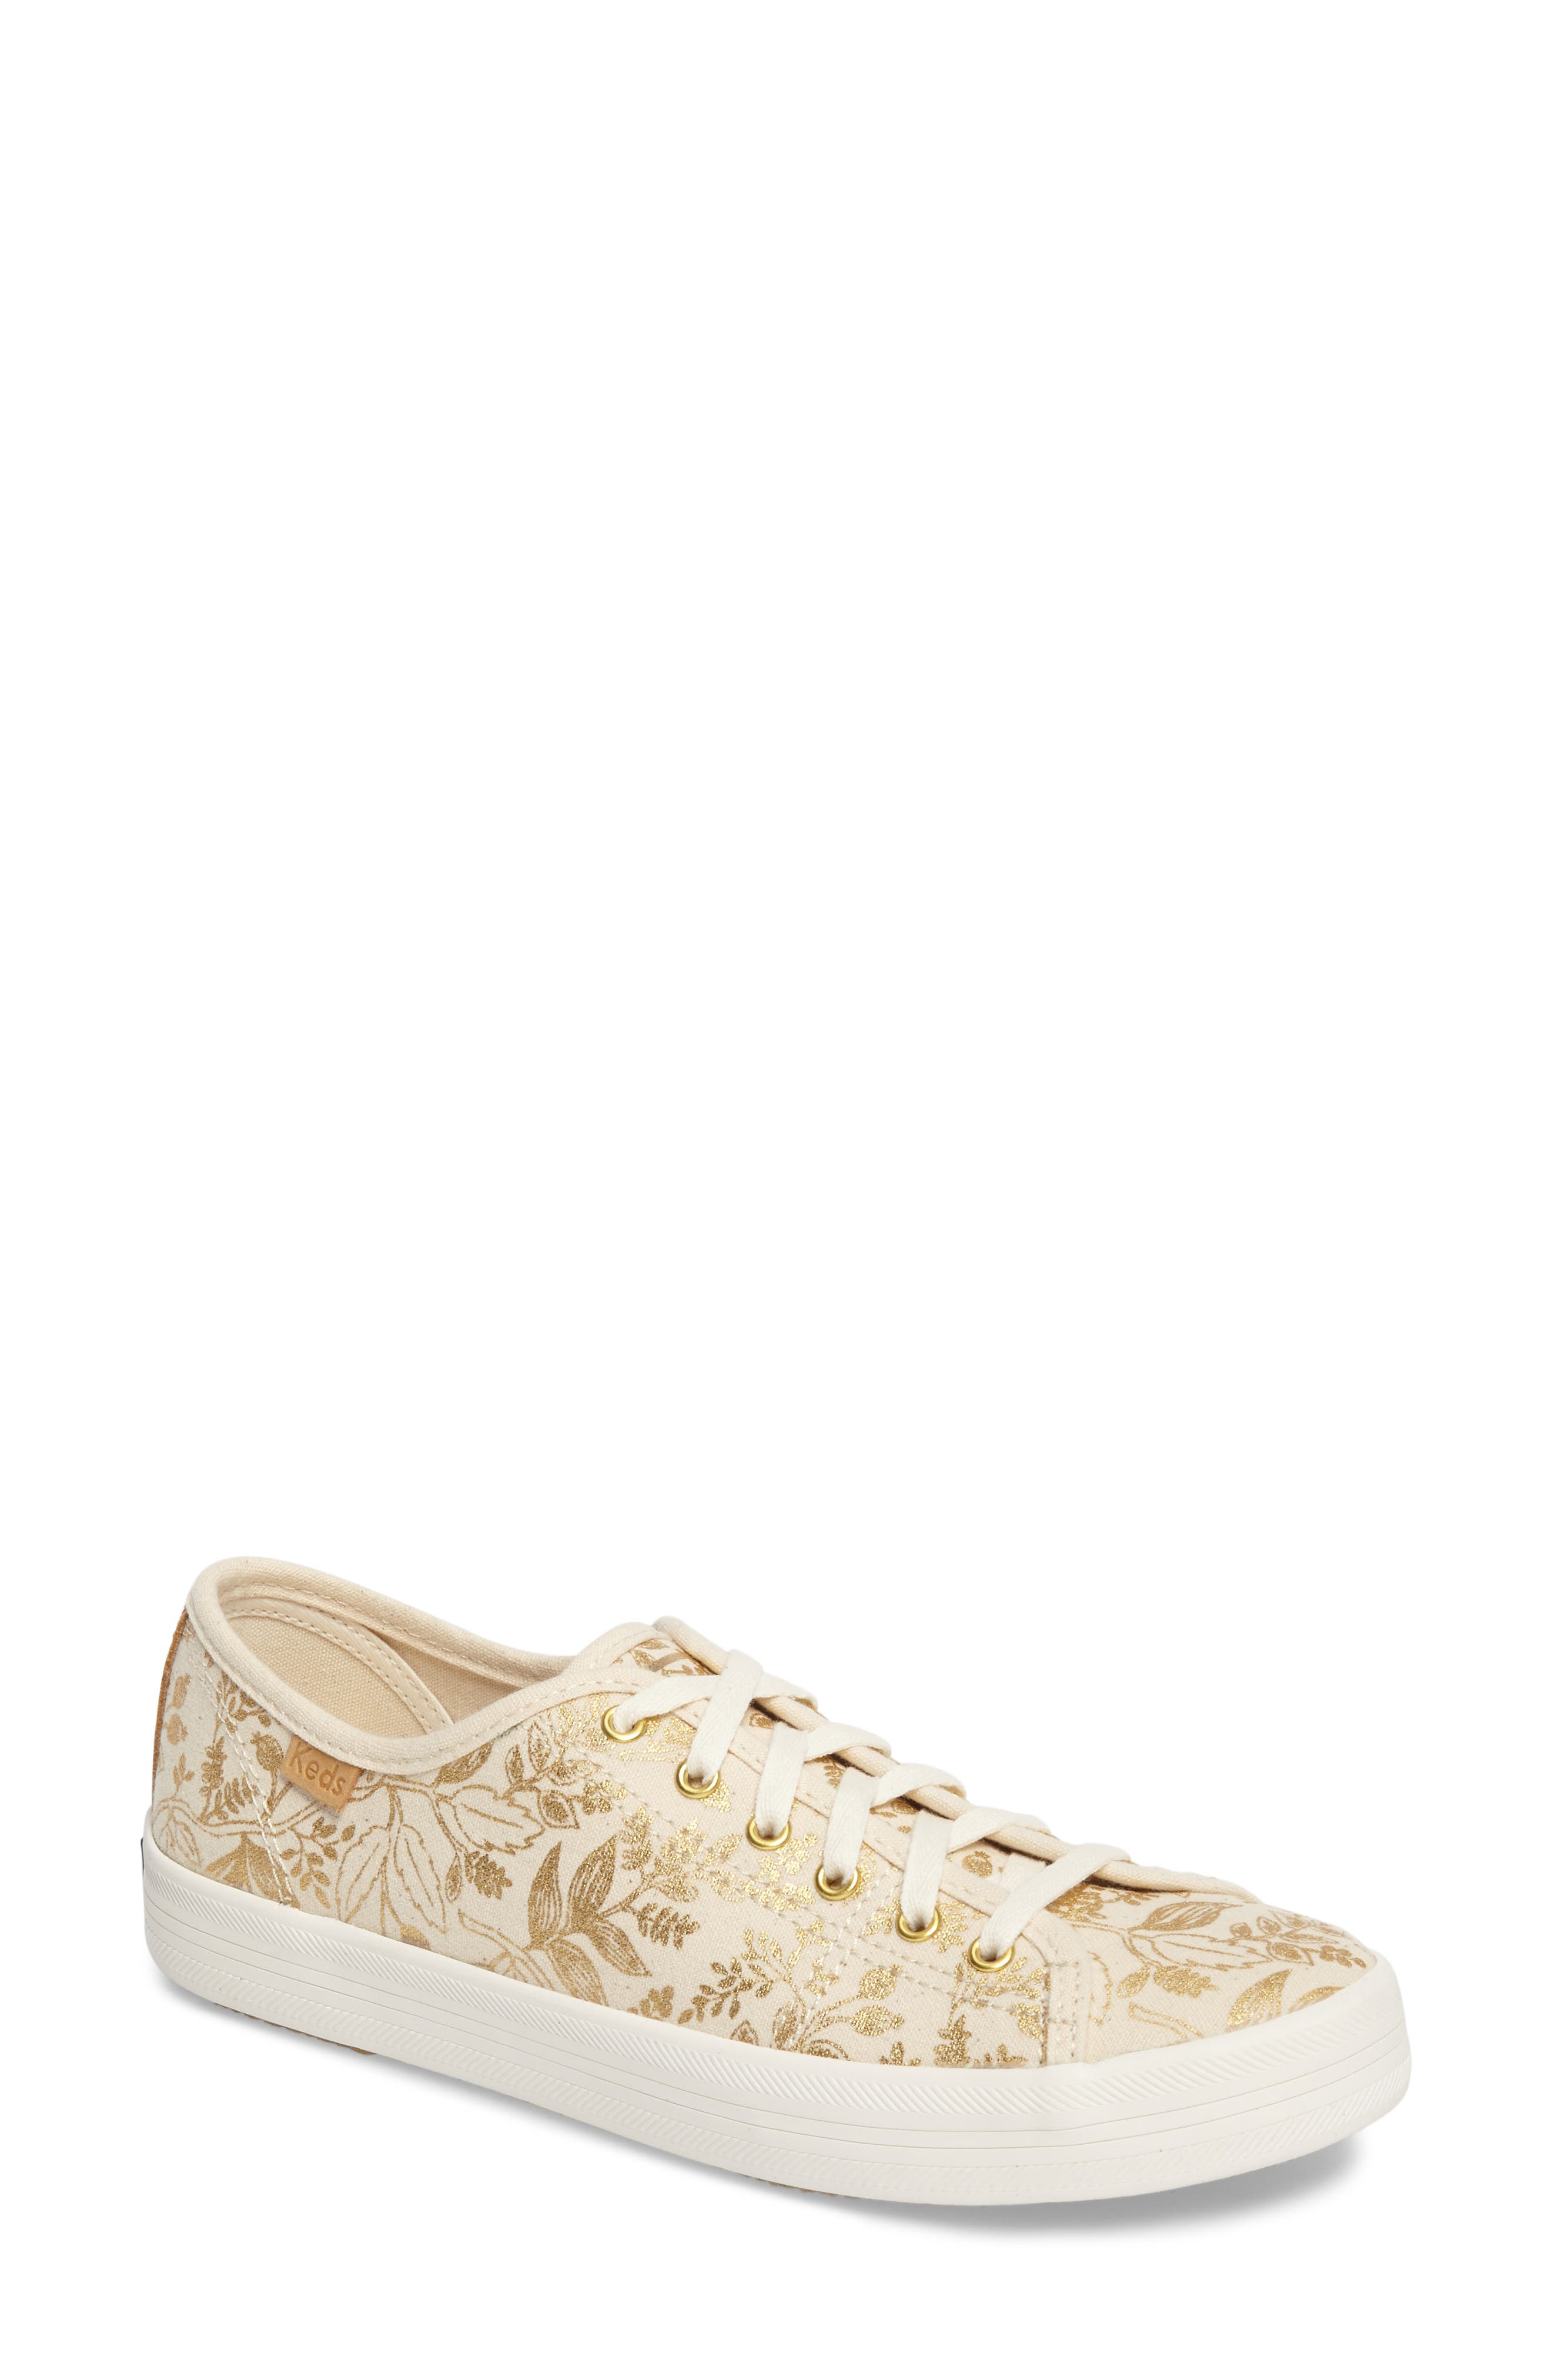 x Rifle Paper Co. Queen Anne Sneaker,                         Main,                         color, Natural